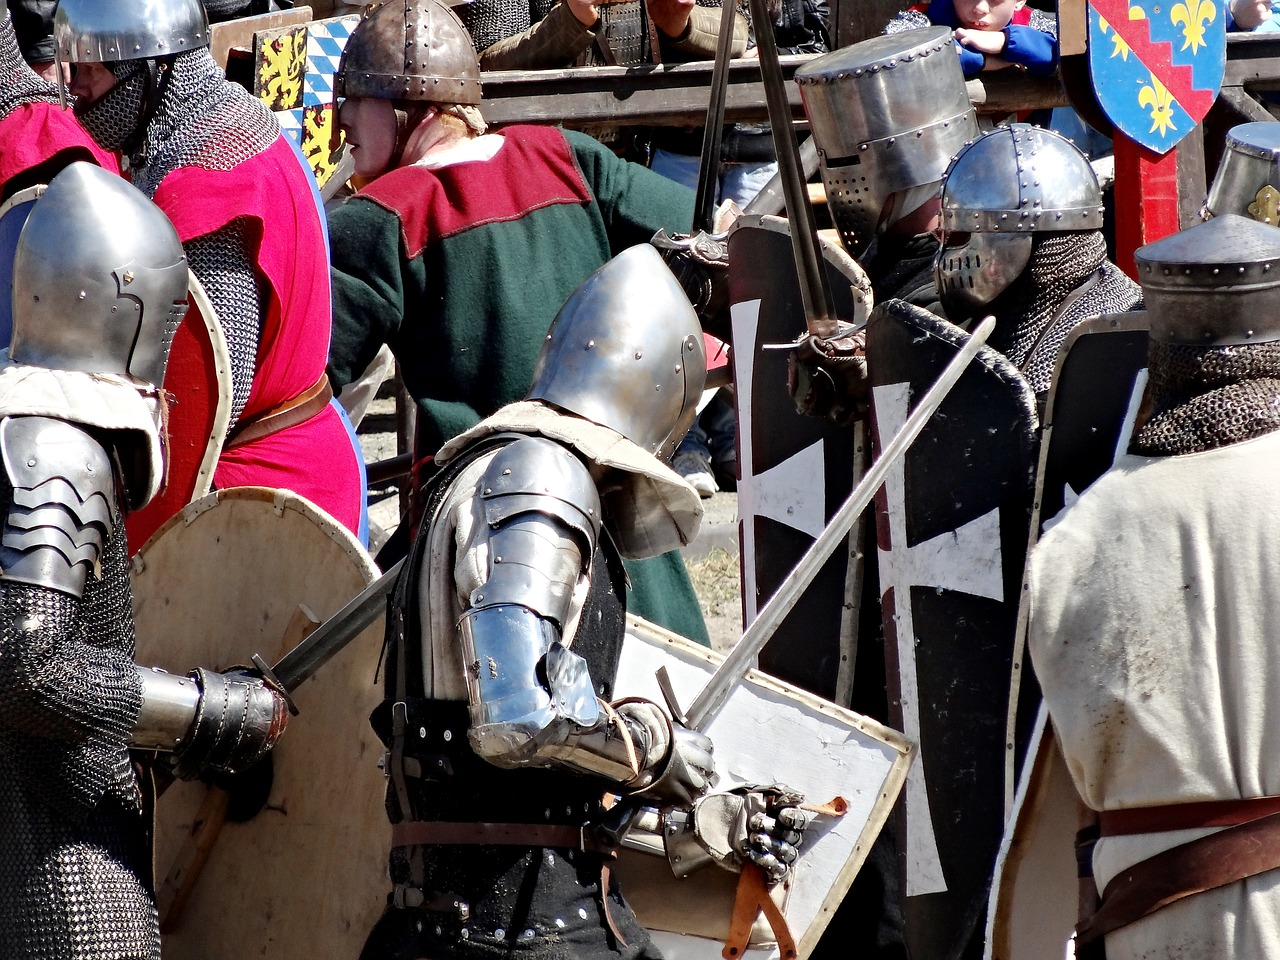 Knight games,knight,armor,fight,swords - free image from ...